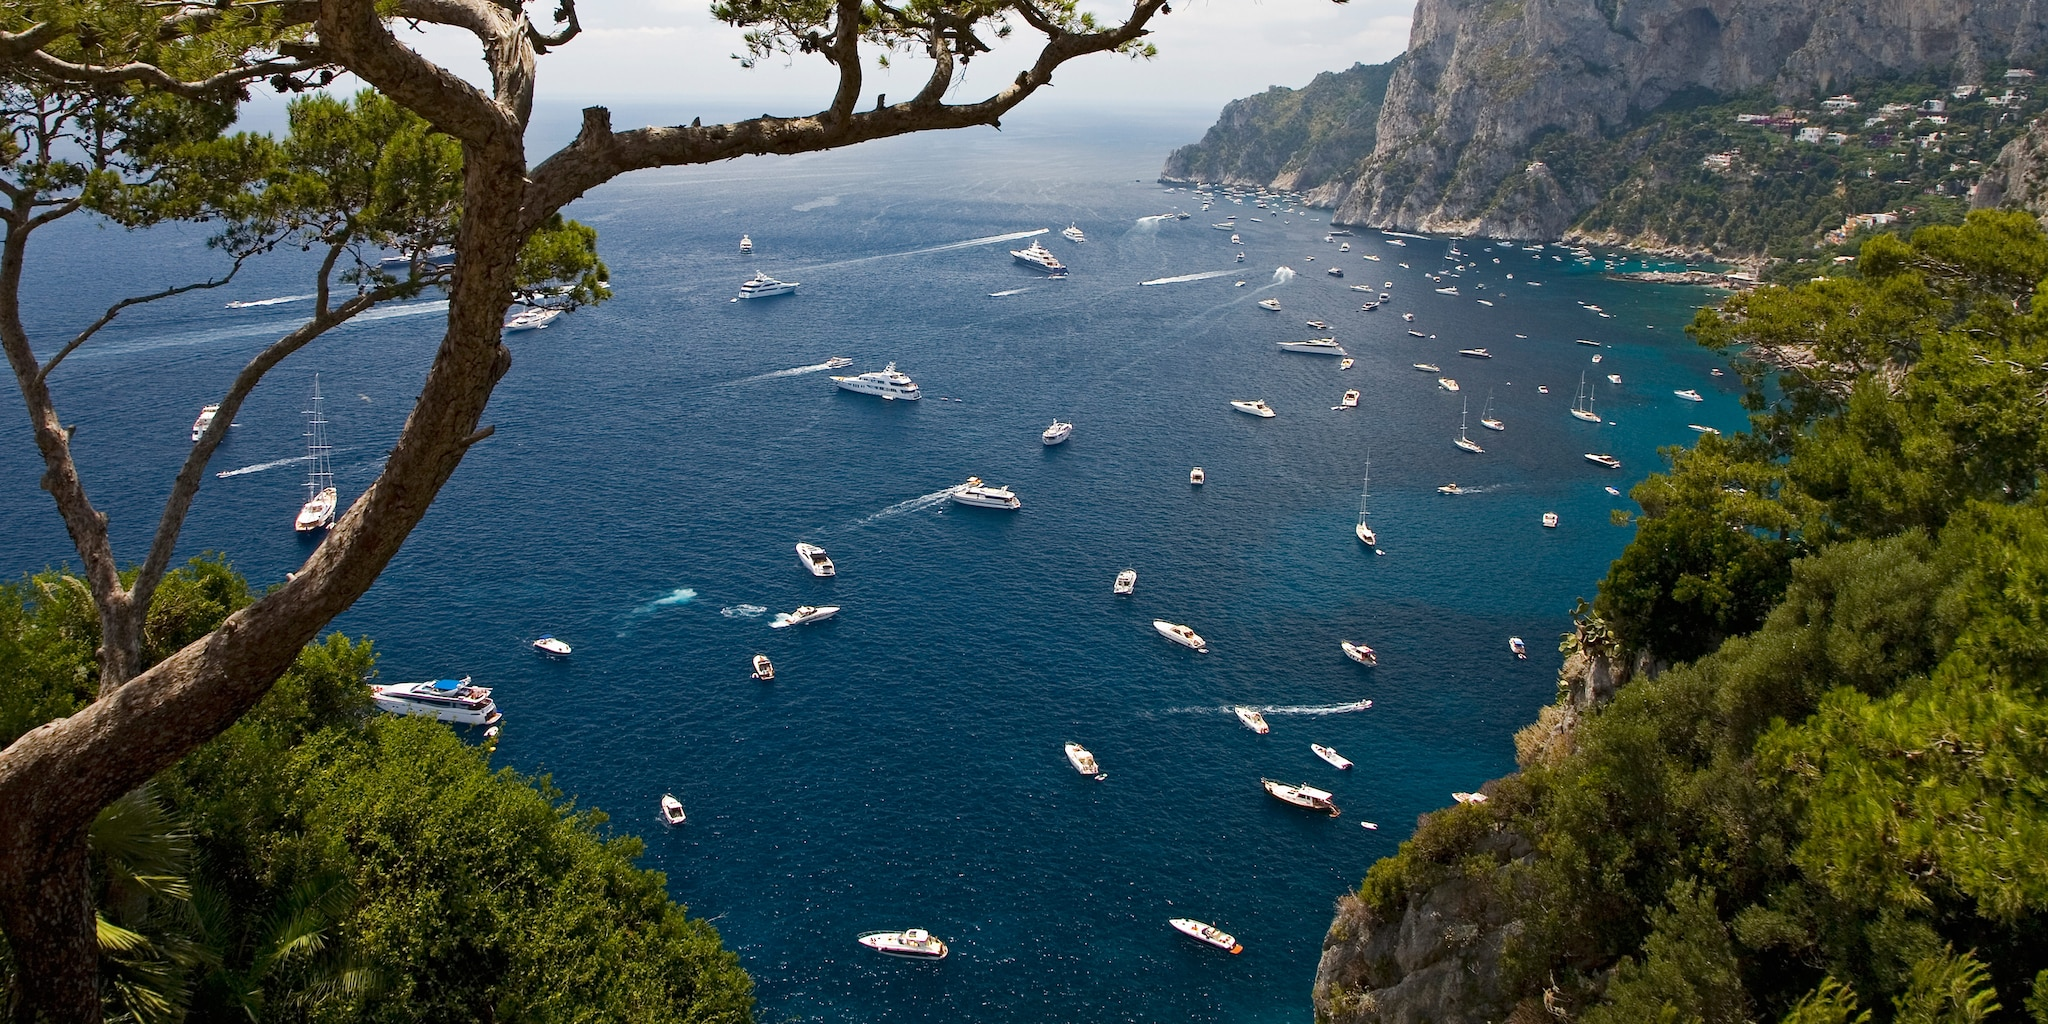 The Isle of Capri is one stop on the Mediterranean cruise